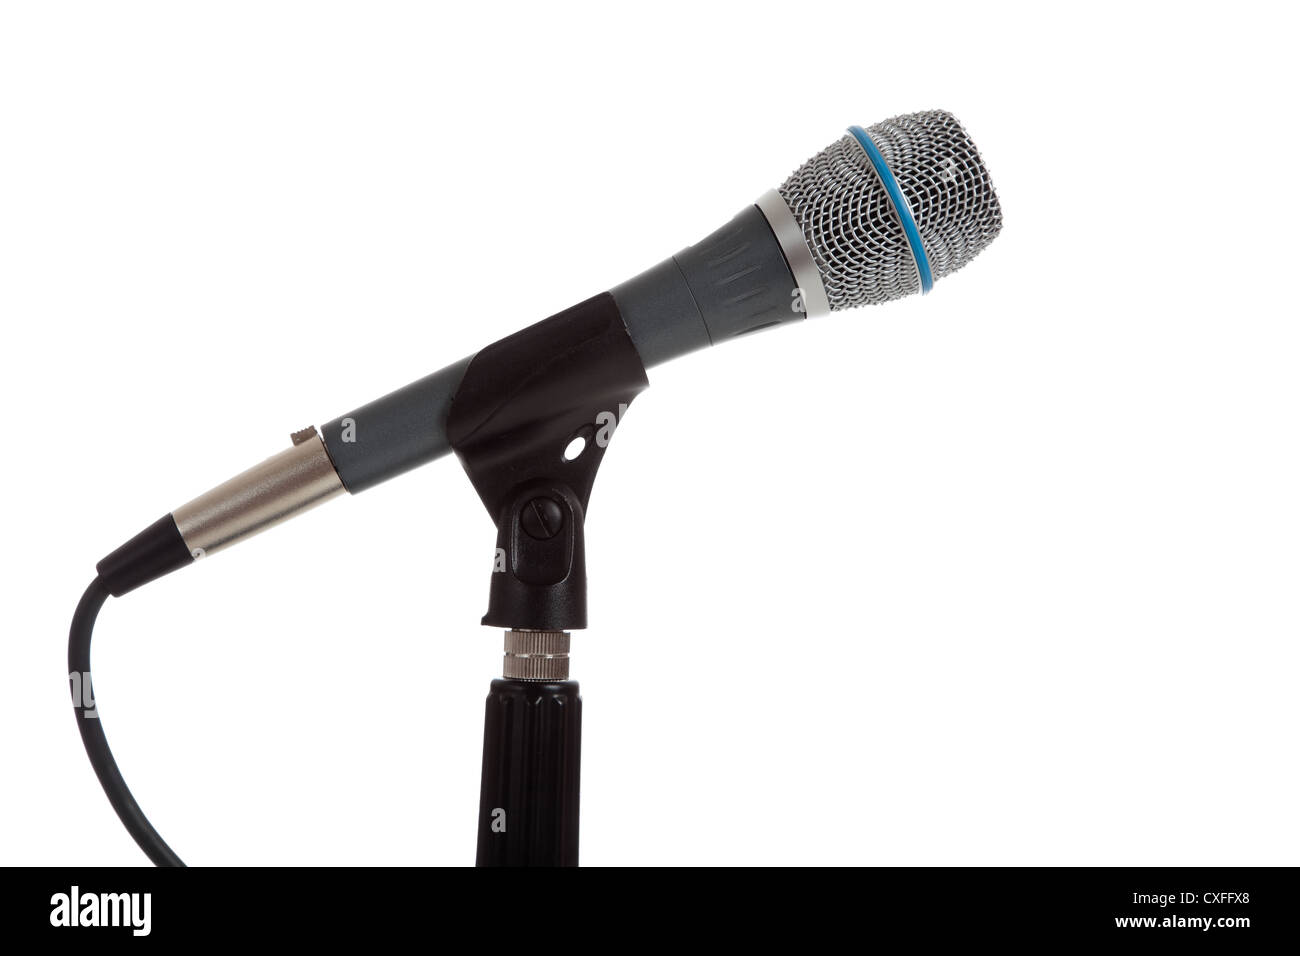 Microphone on a white background - Stock Image